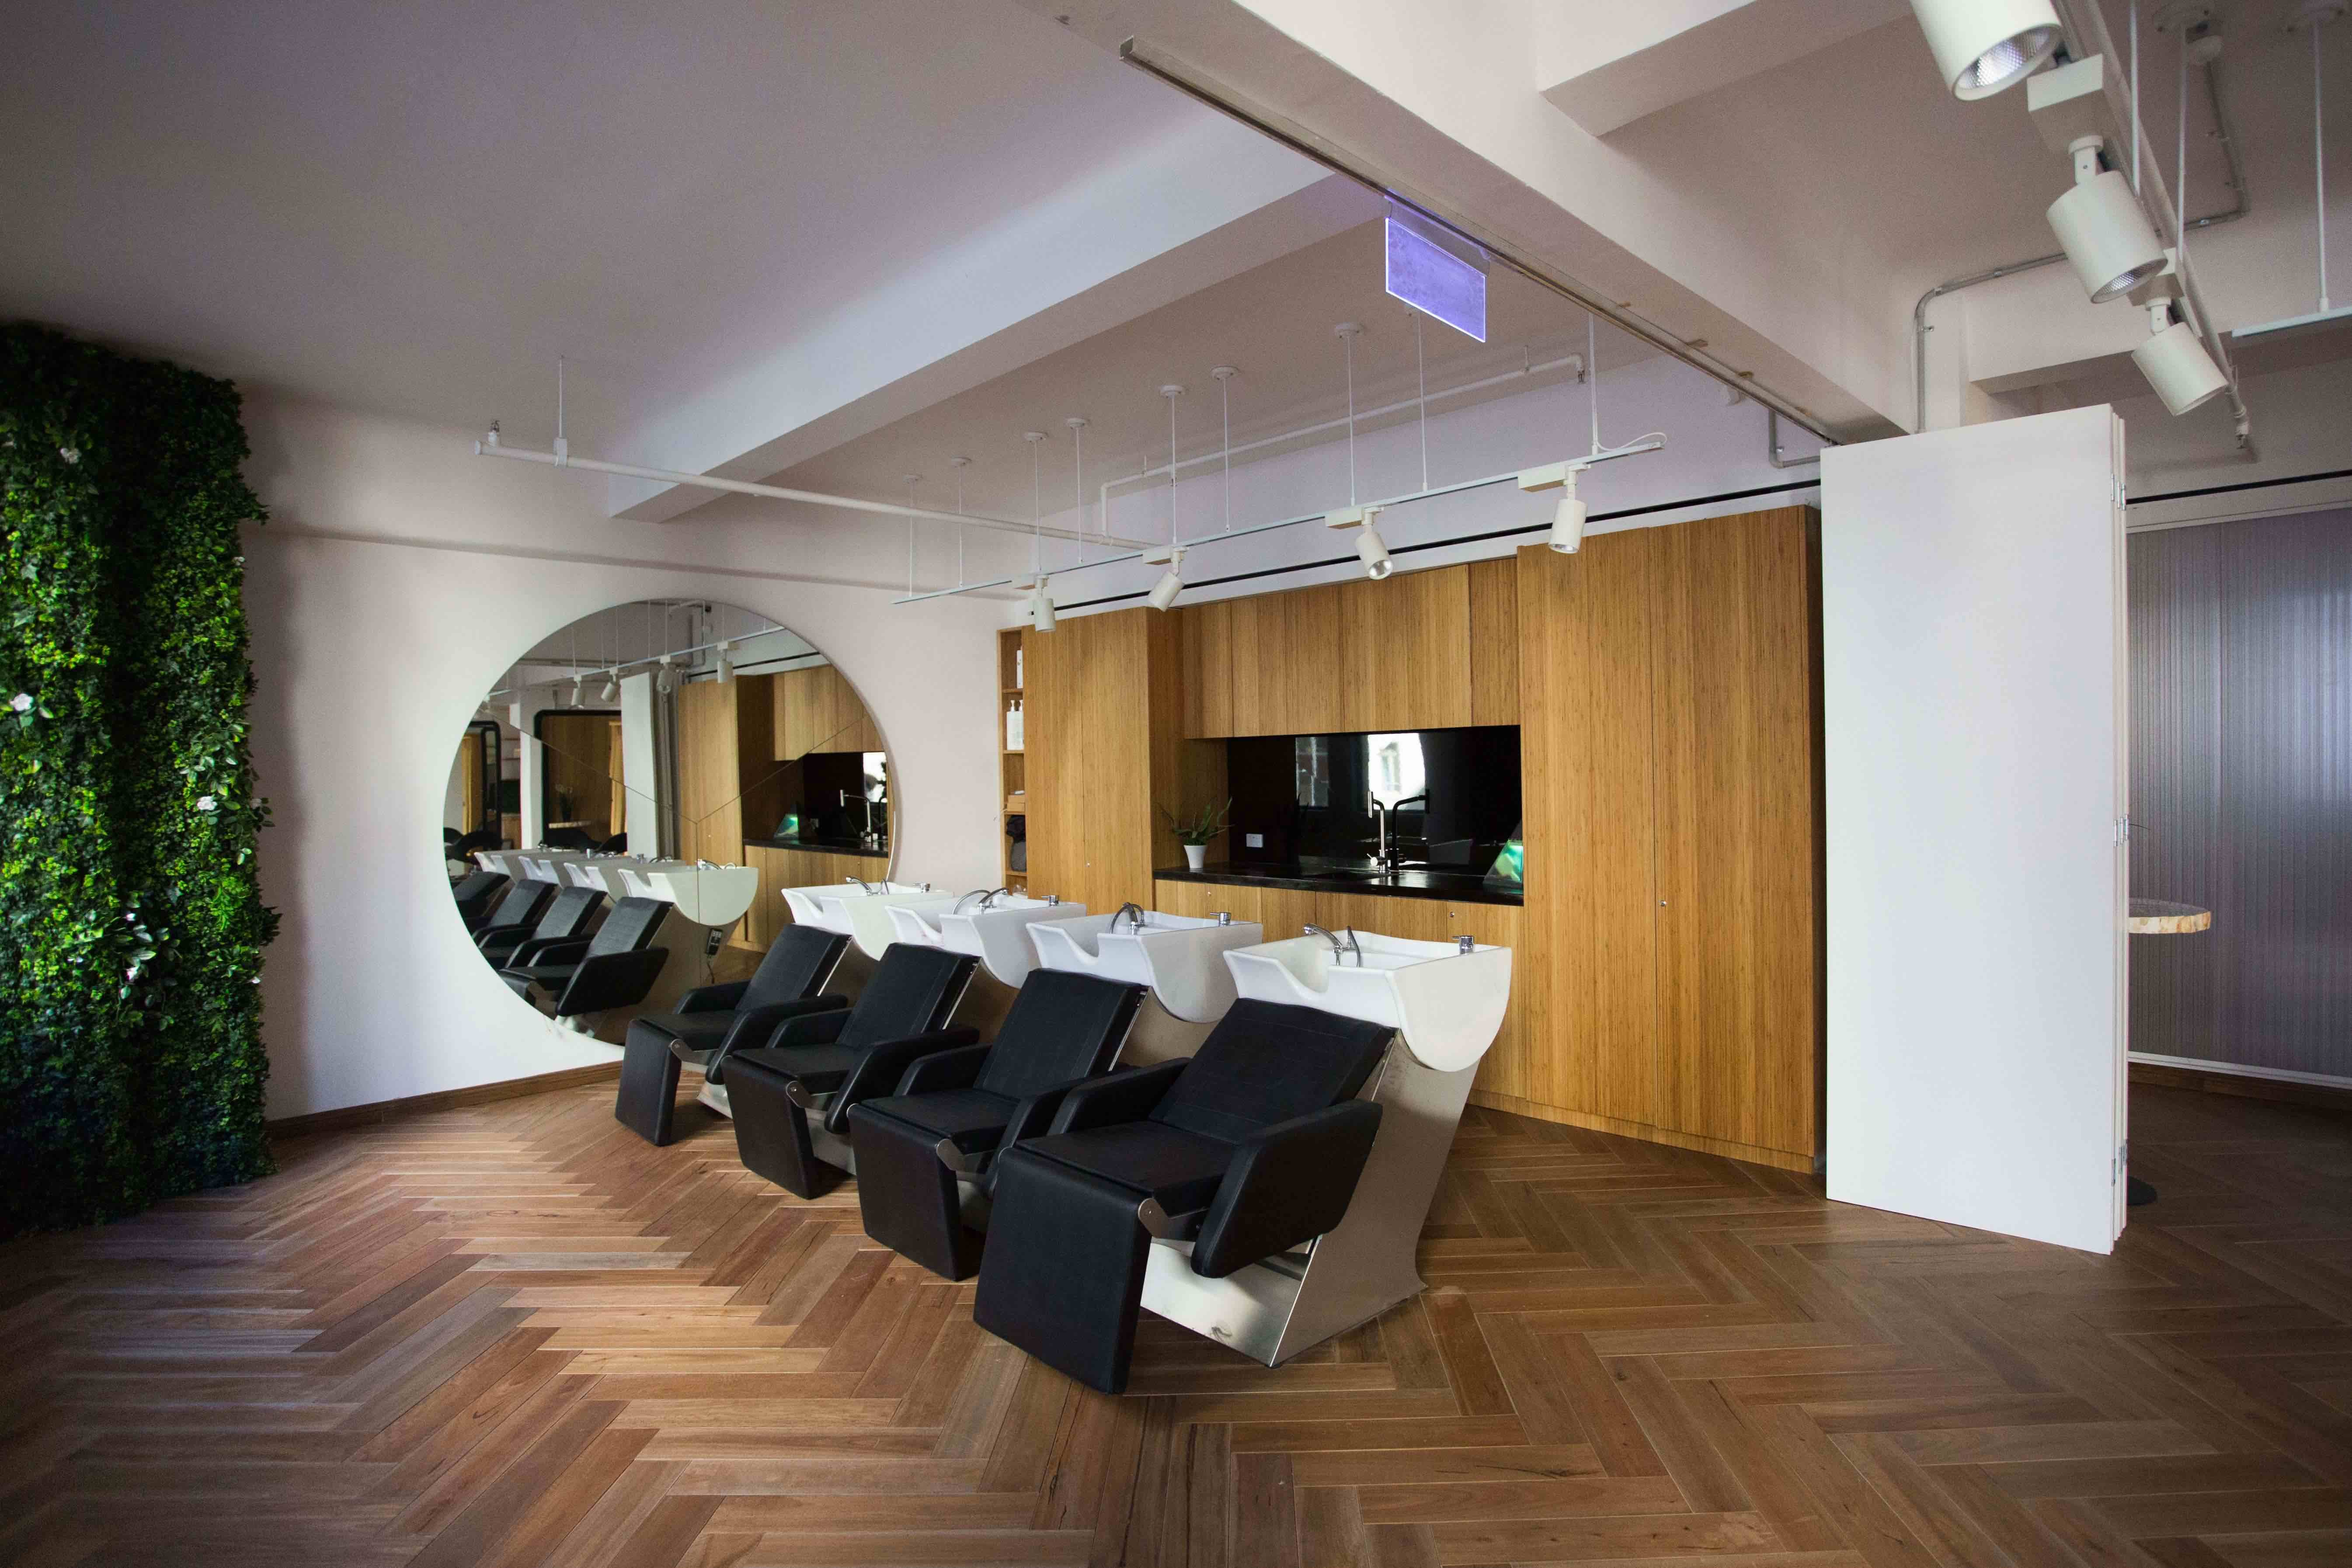 RENT A CHAIR HAIRDRESSING, multi-use area at House of TERRE A MER, image 8